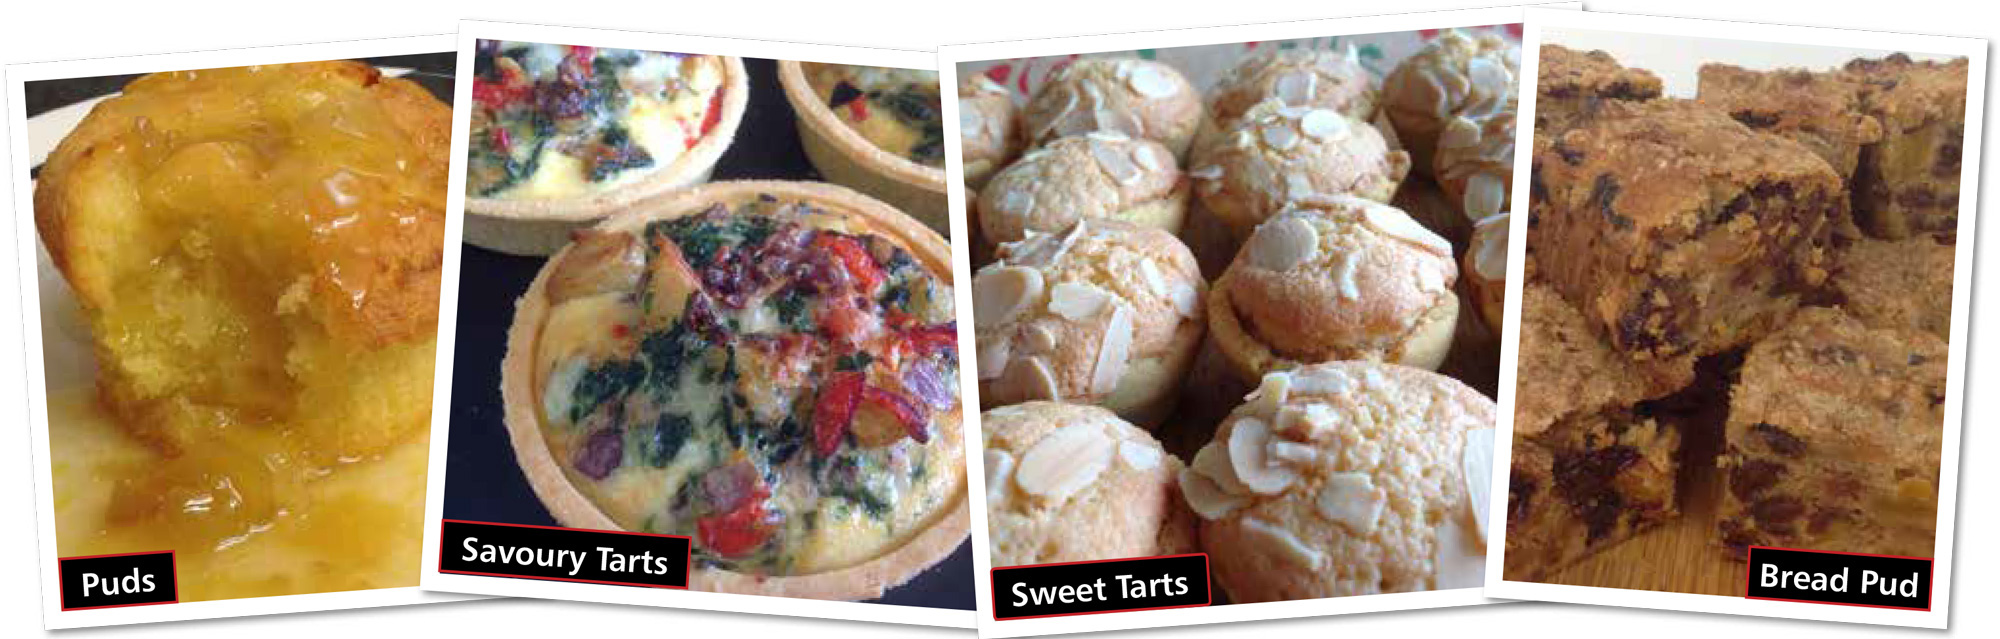 puddings and sweet and savoury tarts